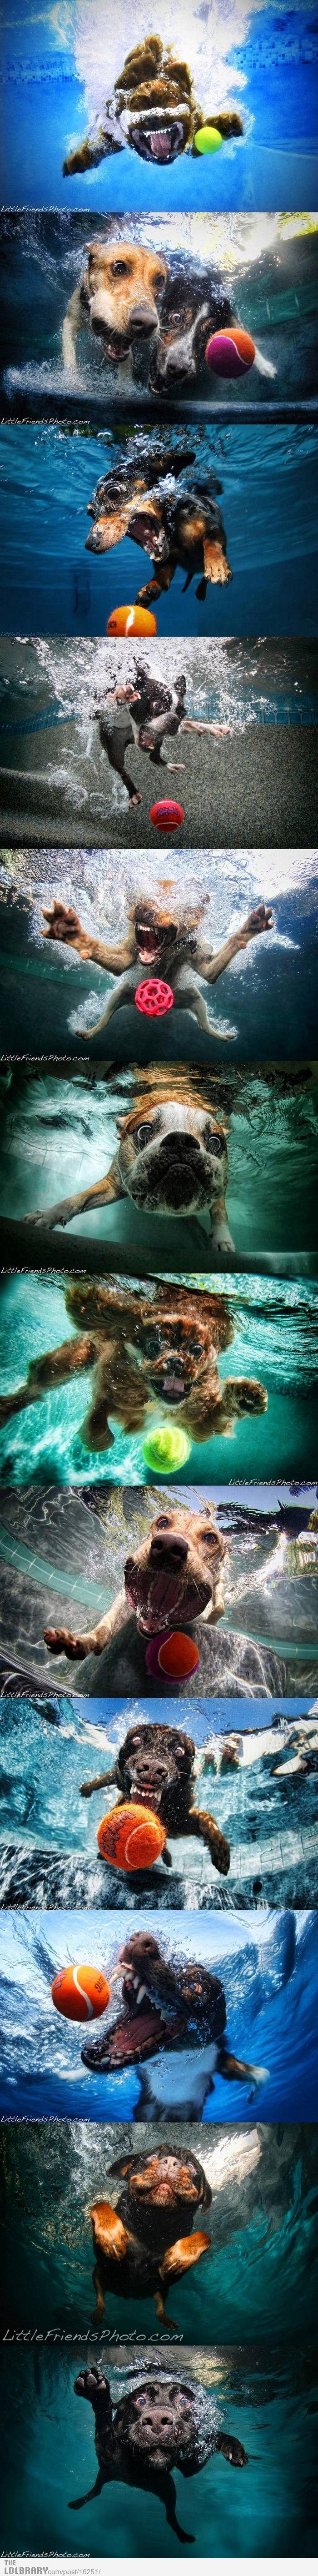 These are hysterical.: Doggie, Puppies, Funny Dogs, Silly Dogs, Dogs Photography, Underwater Dogs, Dogs Pictures, So Funny, Dogs Faces